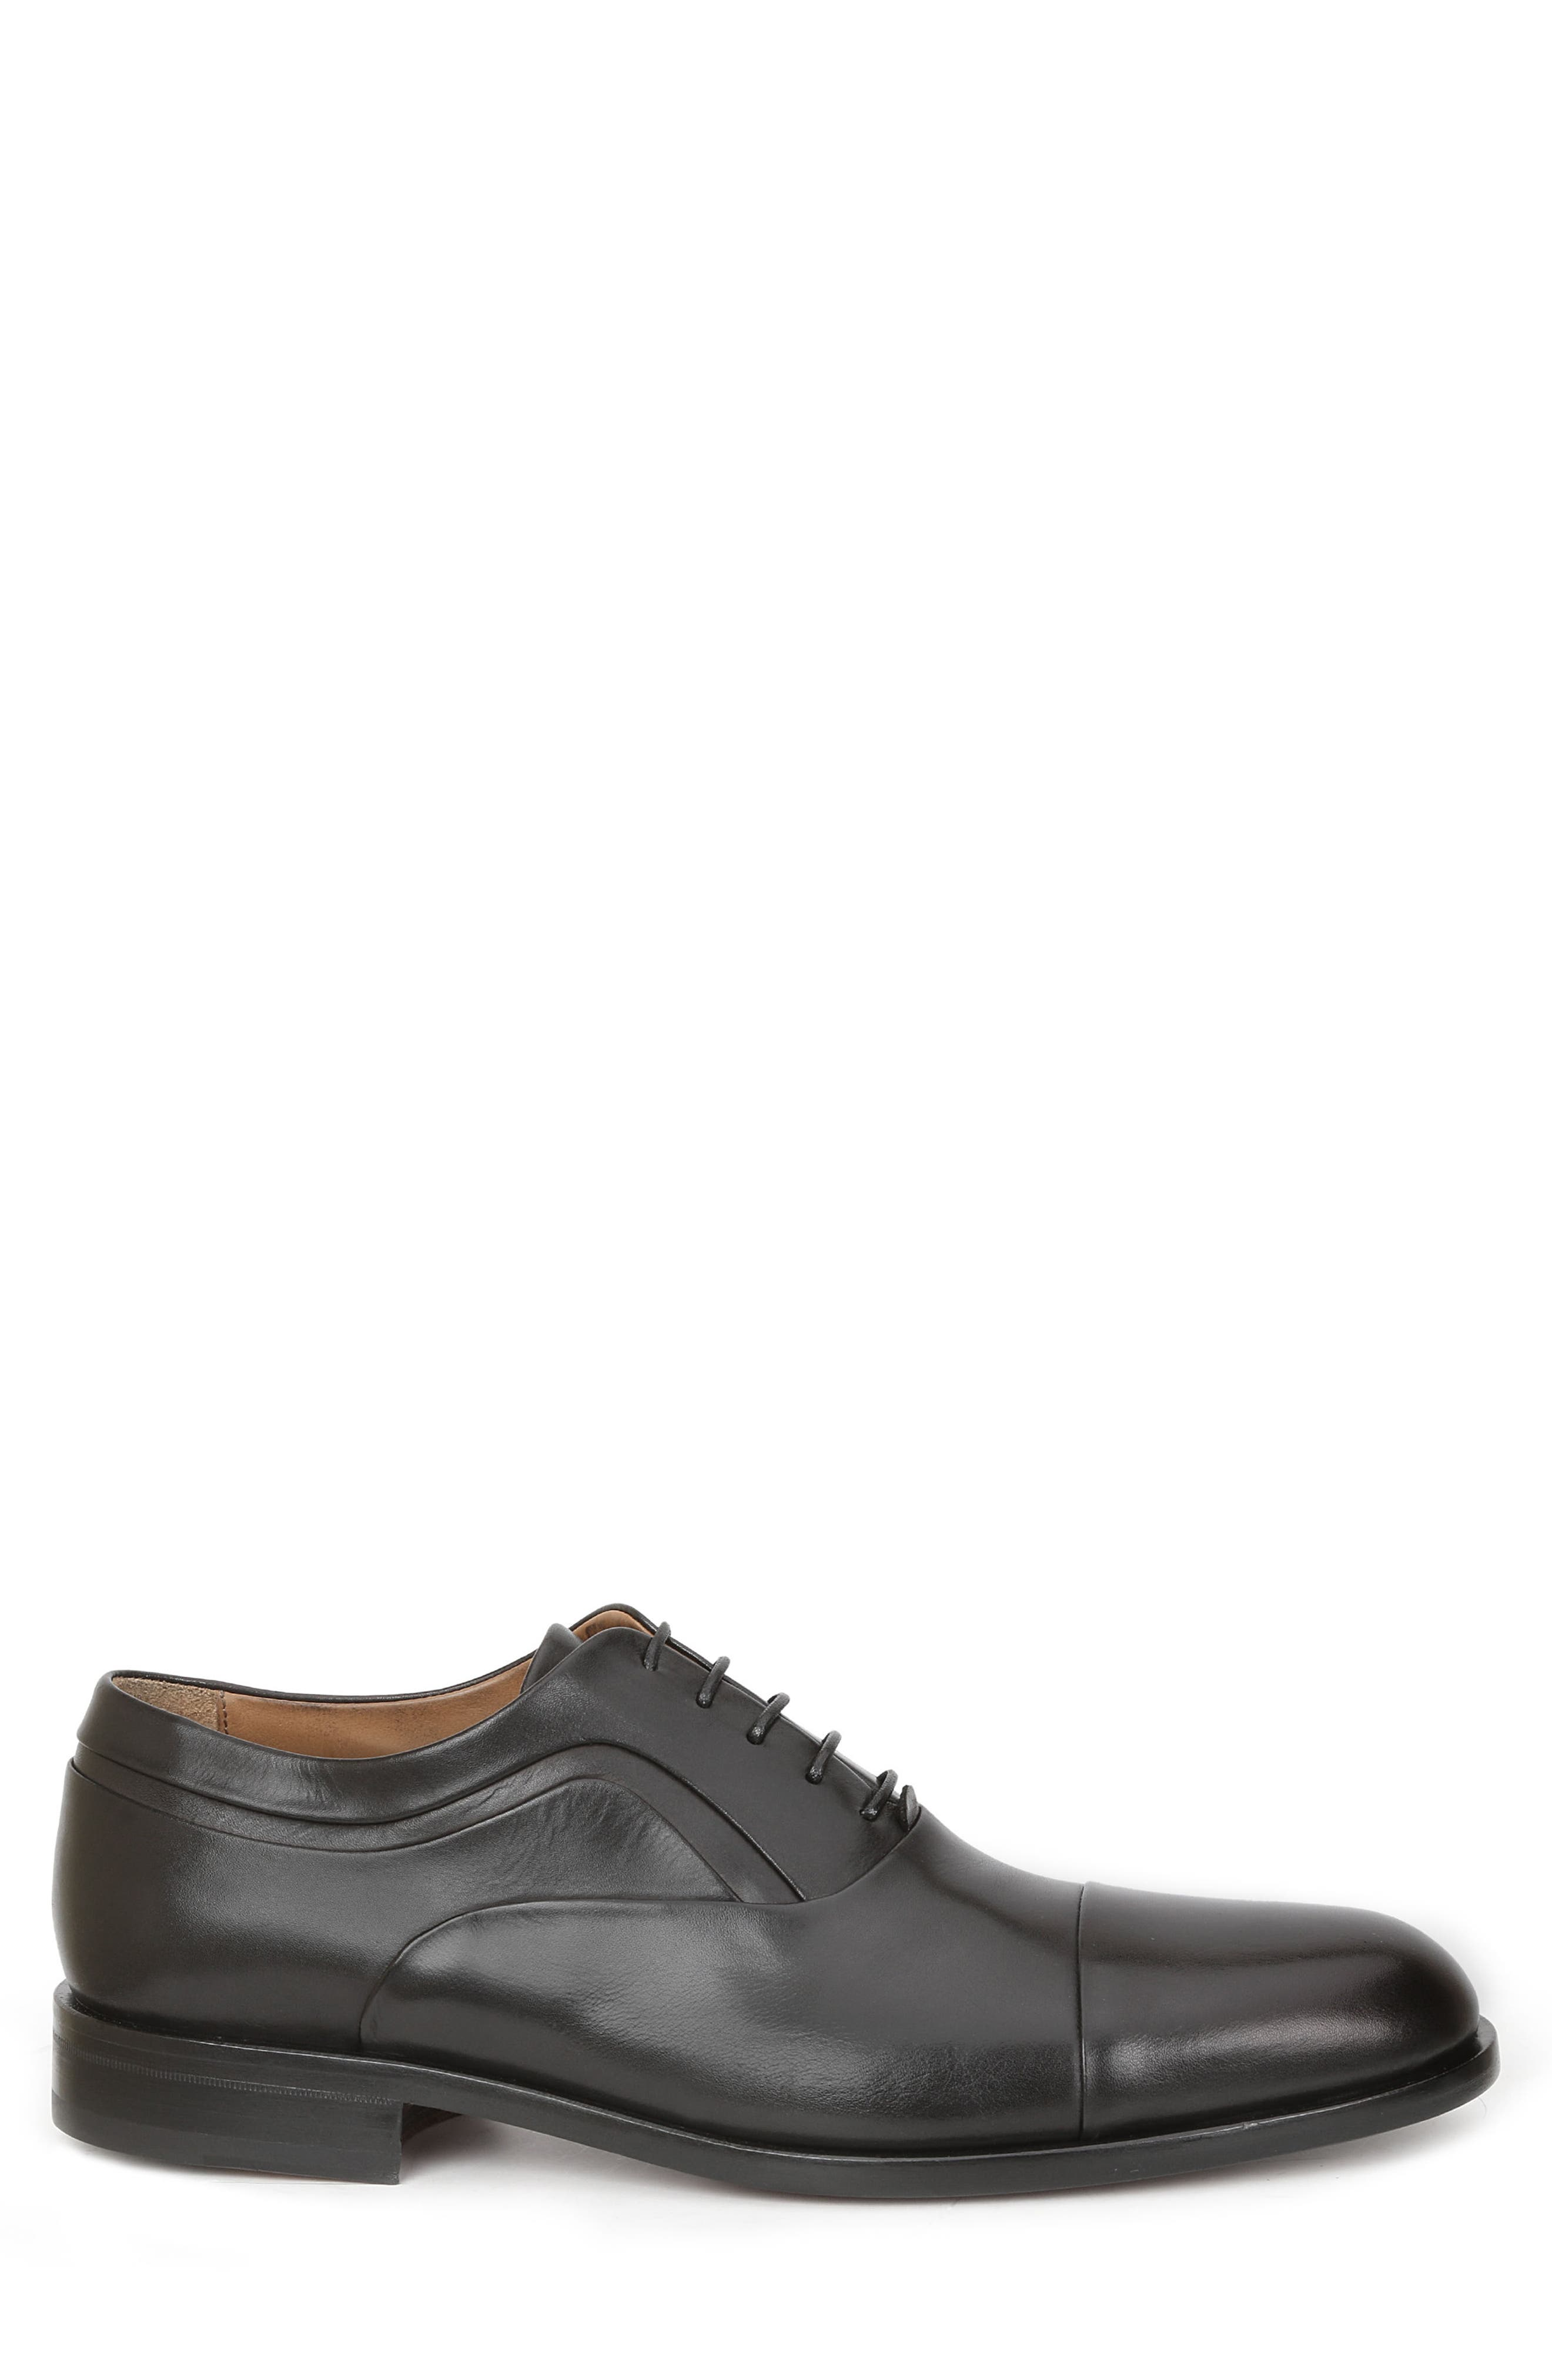 BRUNO MAGLI, Sassiolo Cap Toe Oxford, Alternate thumbnail 3, color, BLACK